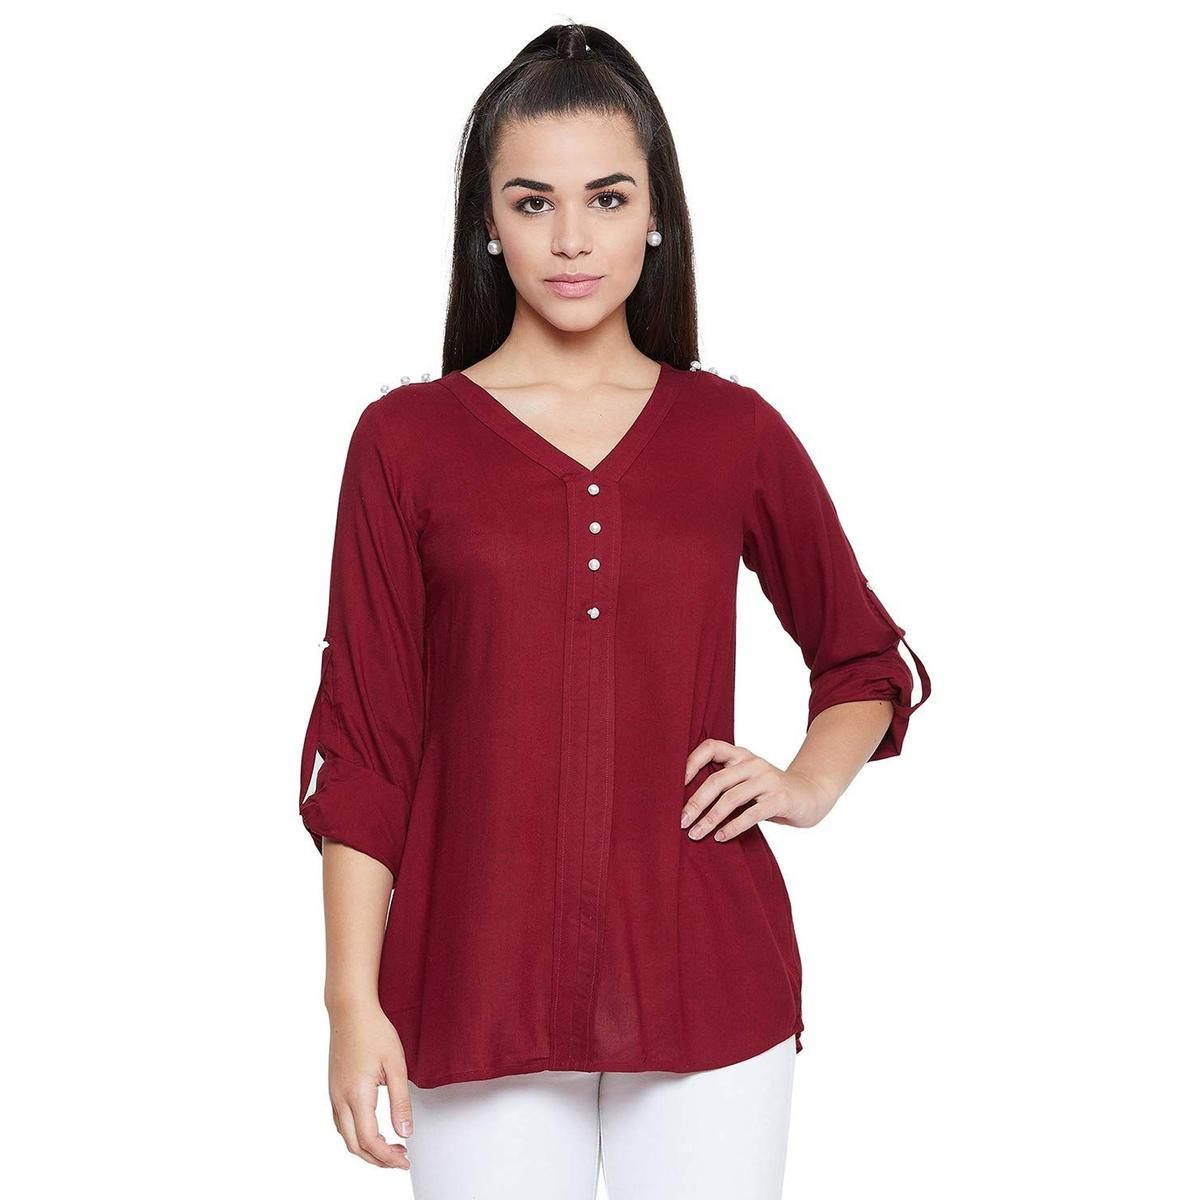 Toshee - Women's Maroon Color Plain Rayon Top